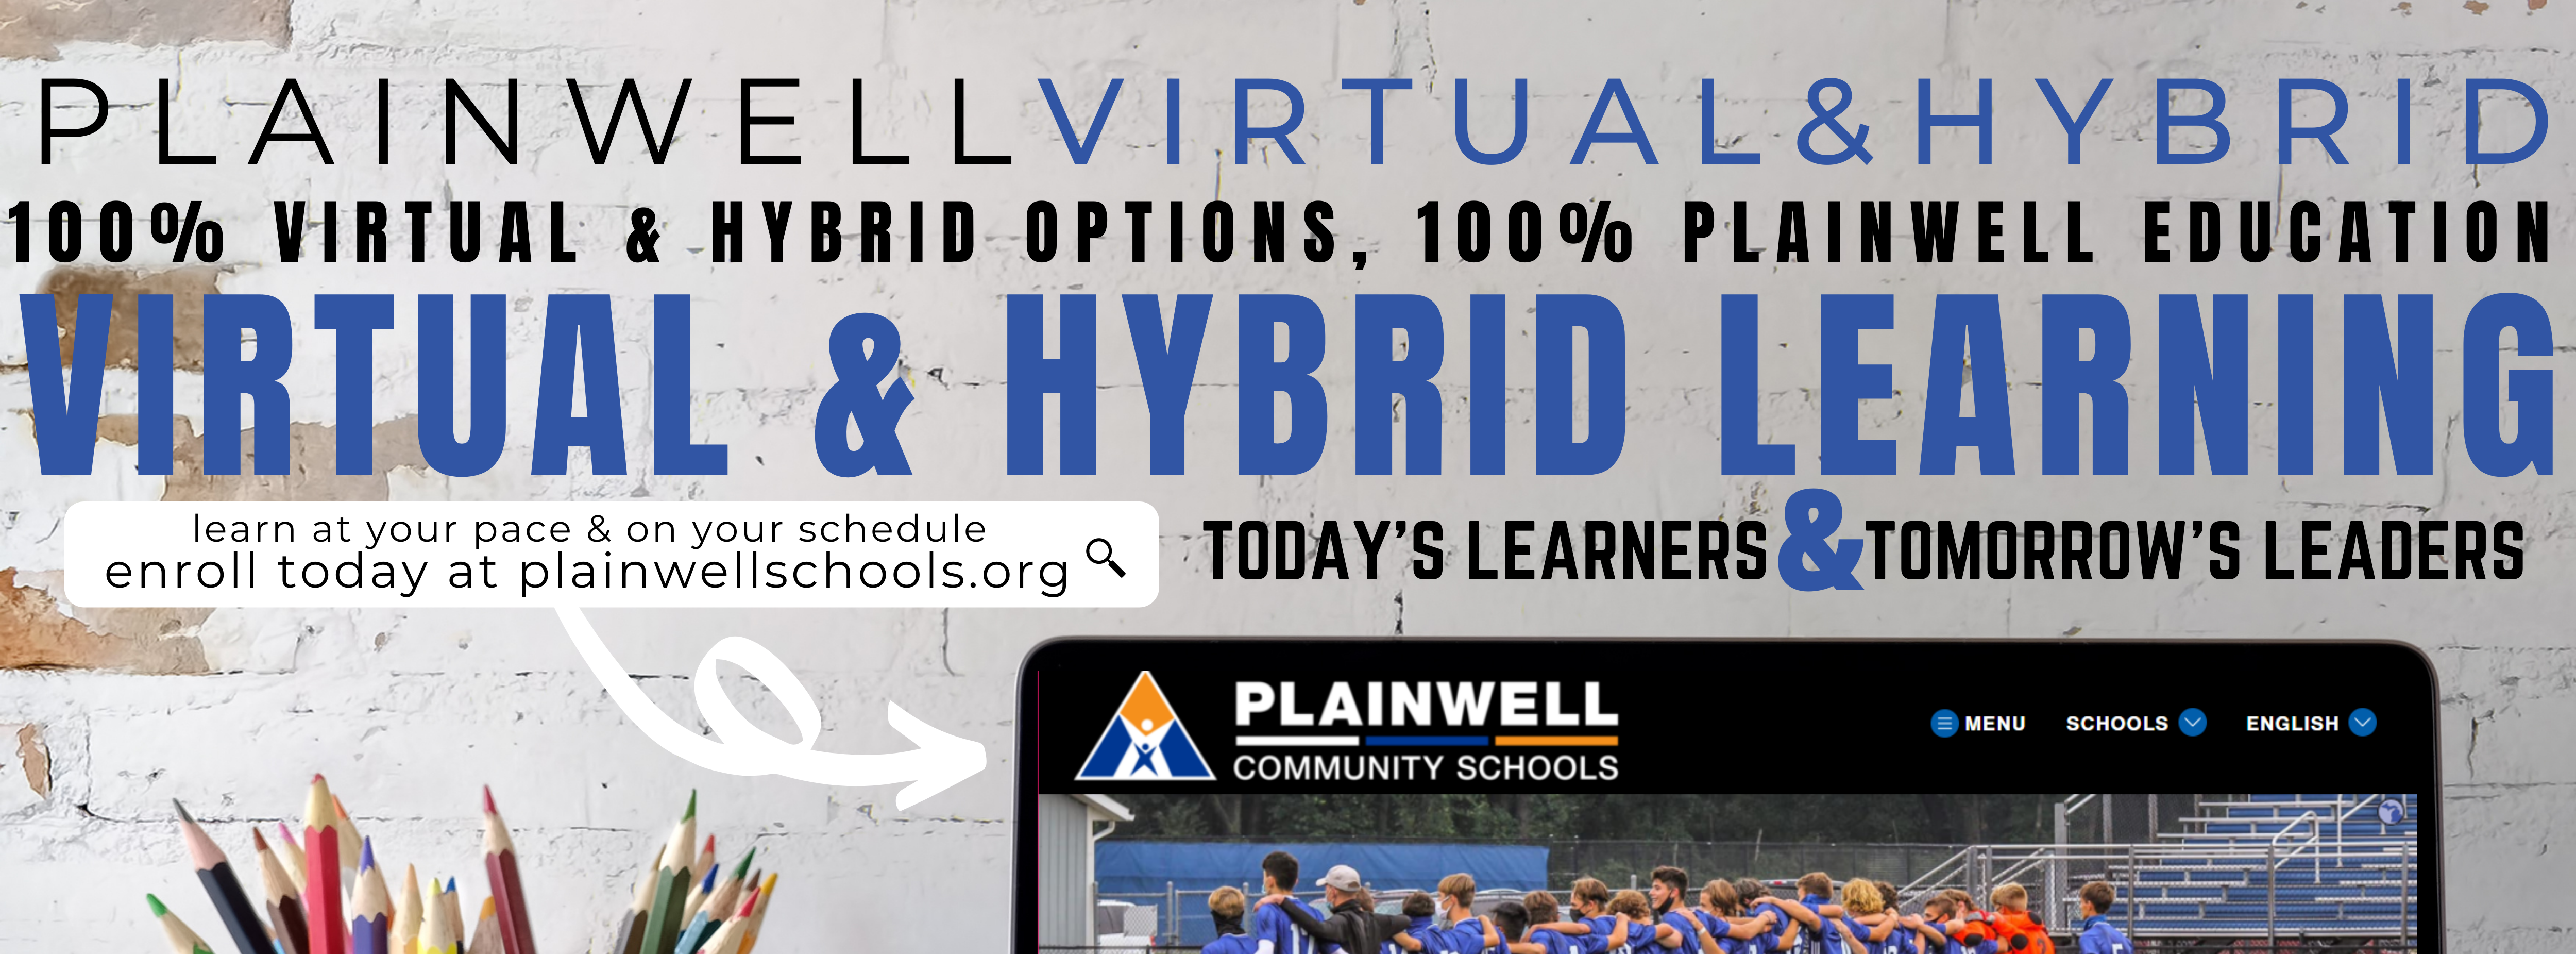 Virtual and hybrid learning banner with picture of laptop and colored pencils